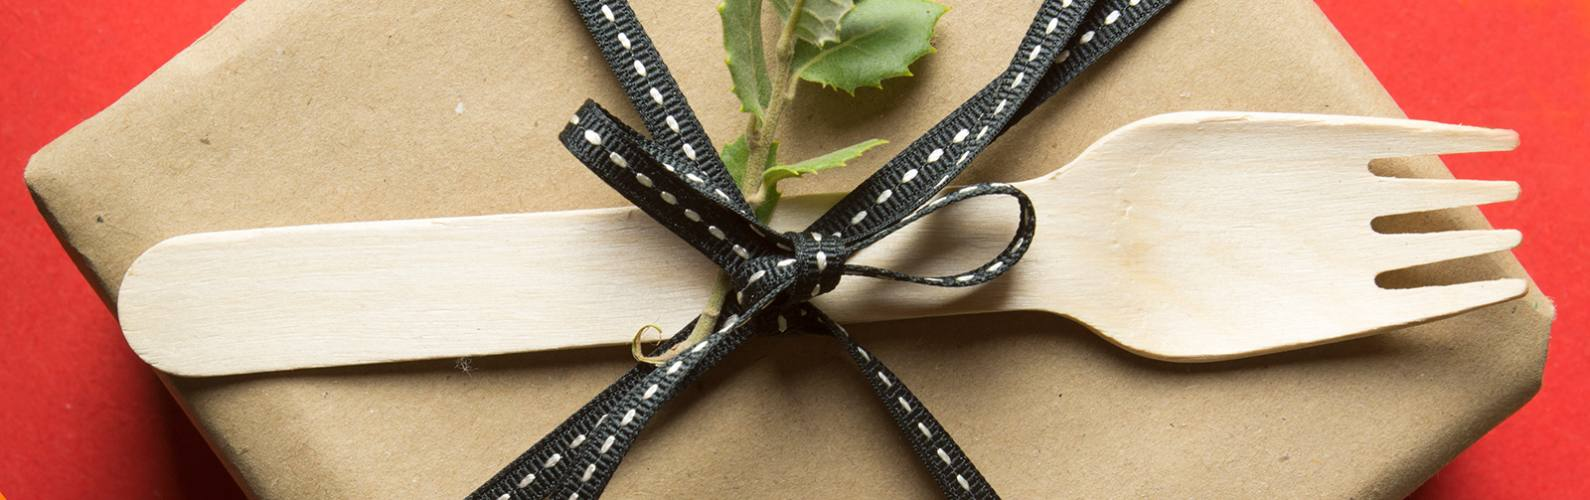 Use your Greenredeem points to bag fabulous foodie gift discounts